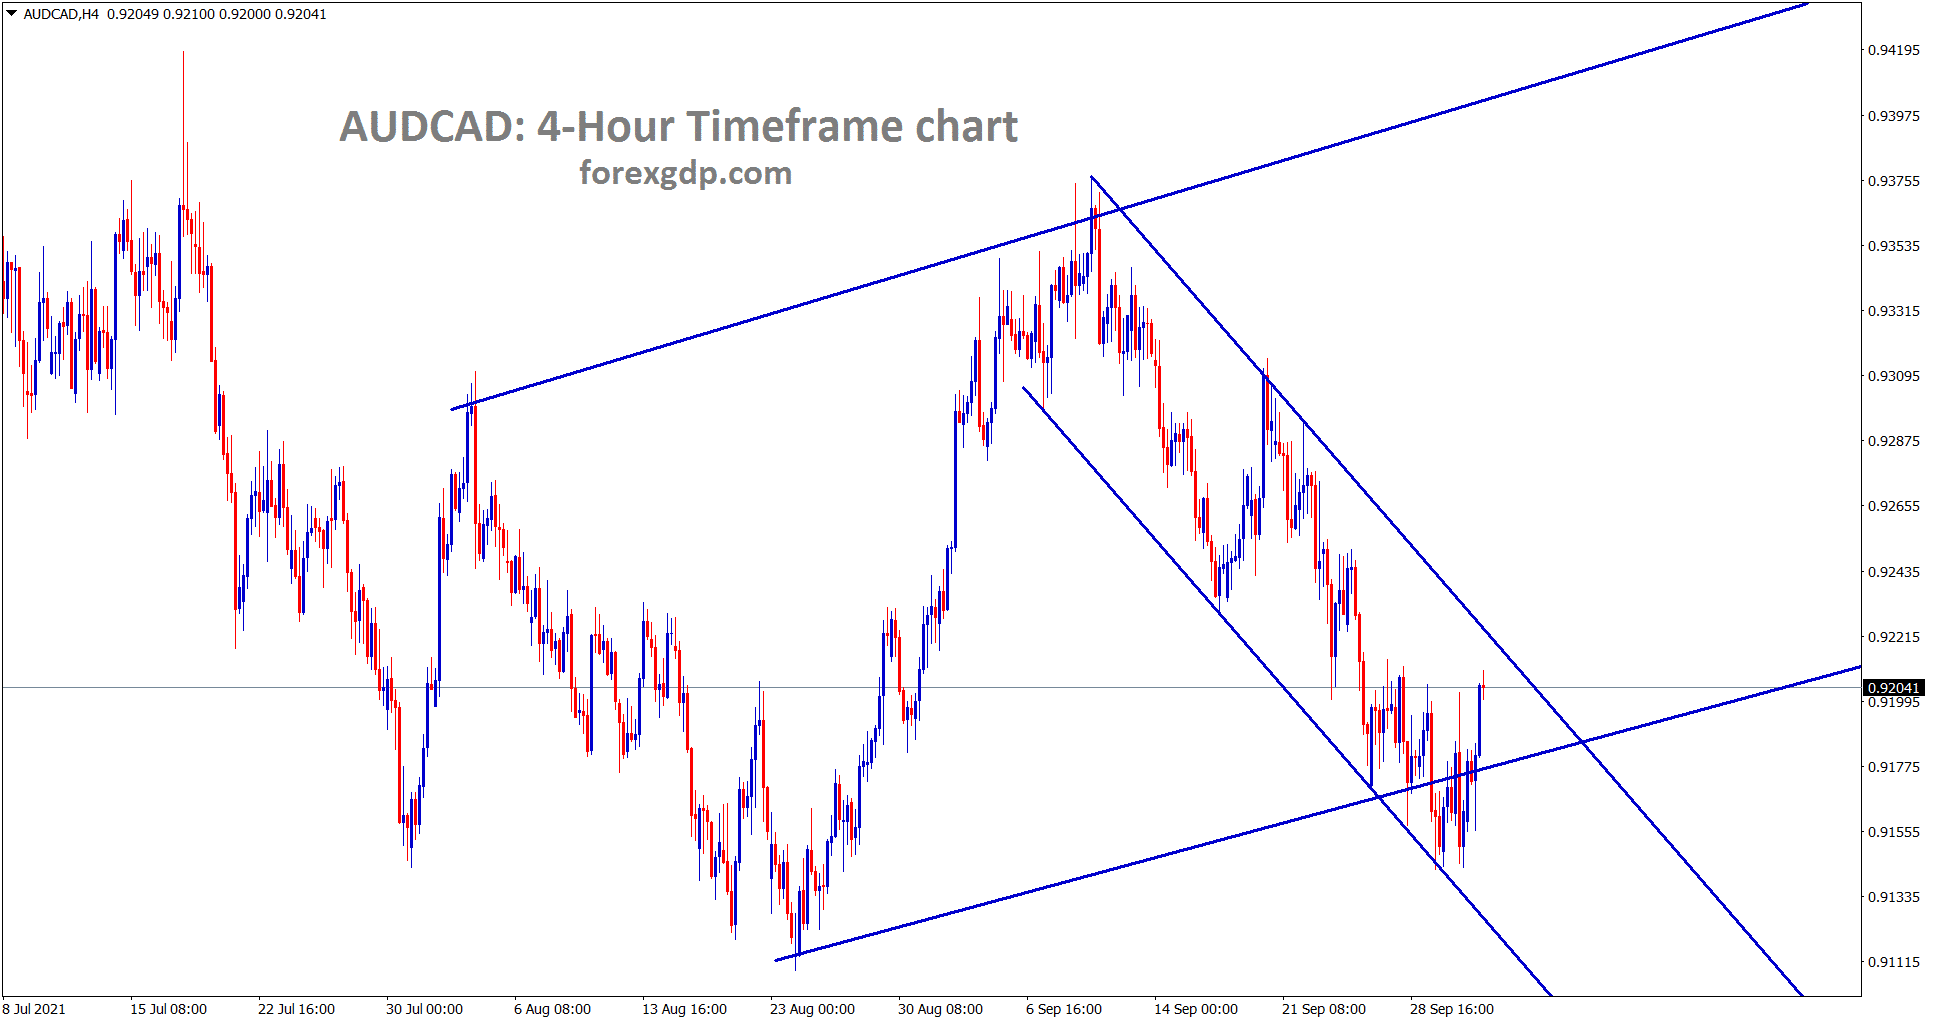 AUDCAD is clearly moving in a descending channel and also rebounding from the higher low